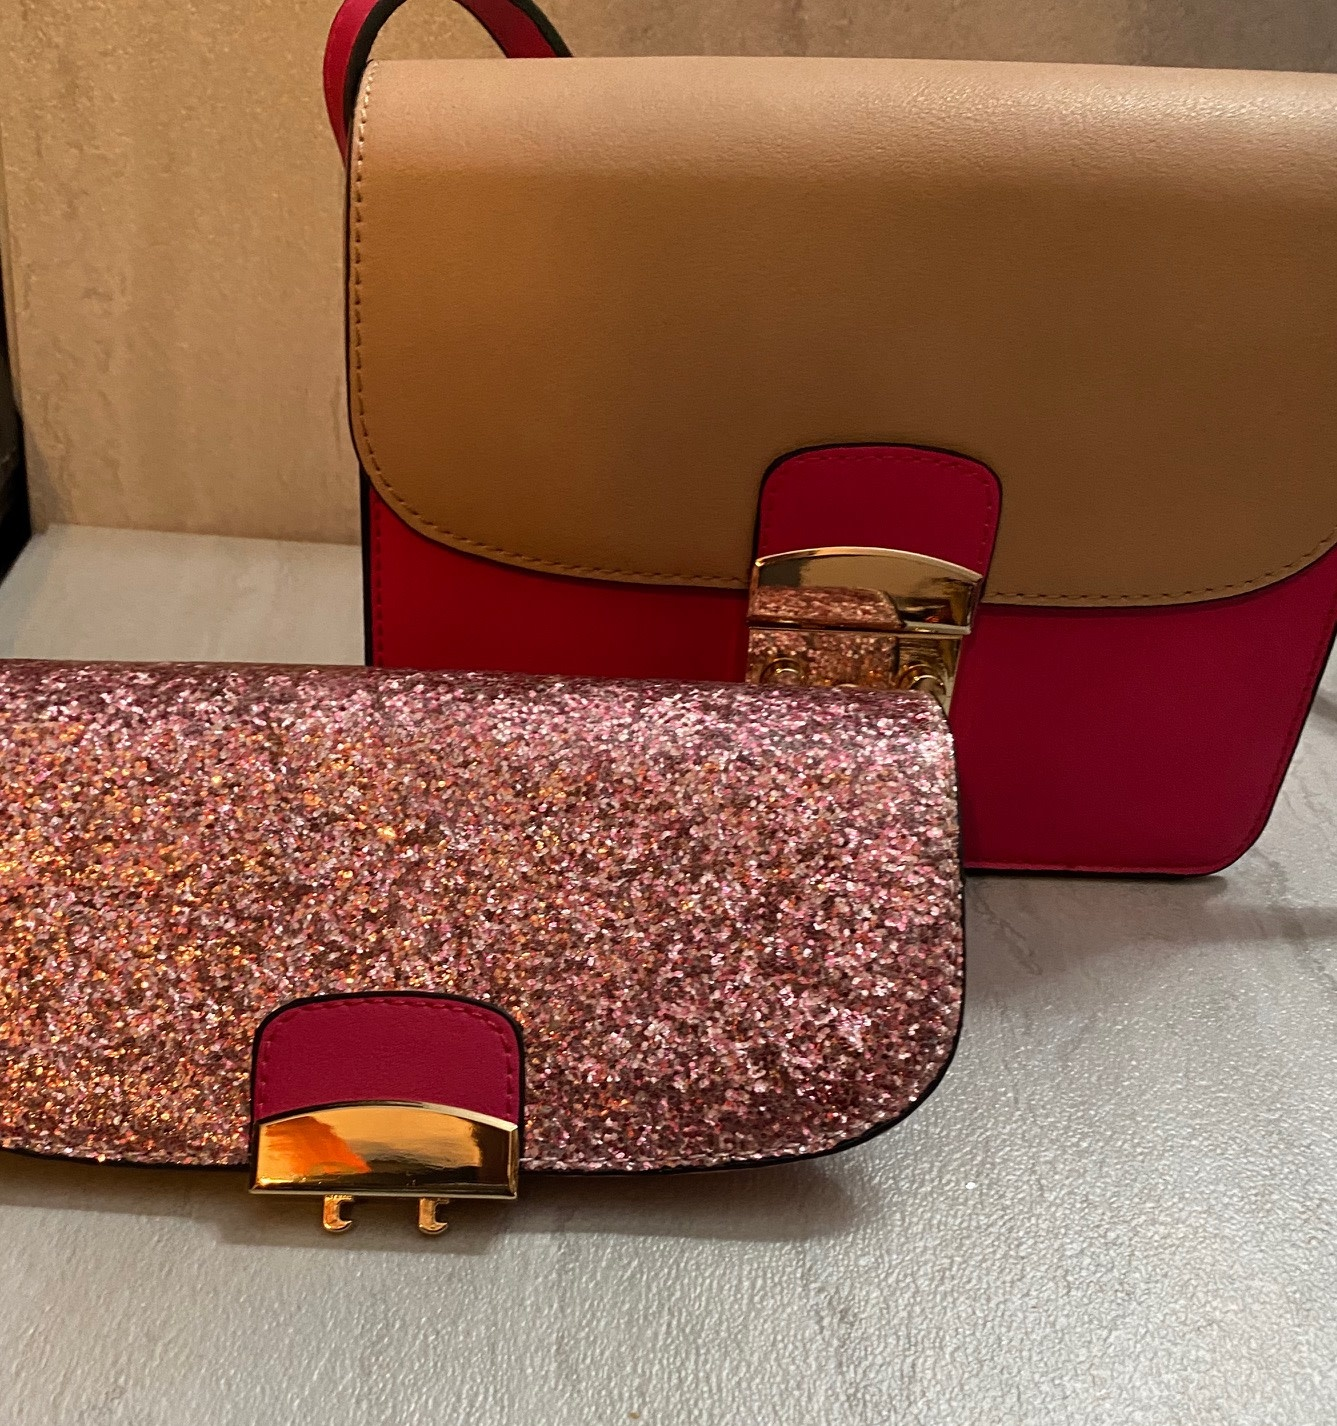 Purse with Interchangeable flaps